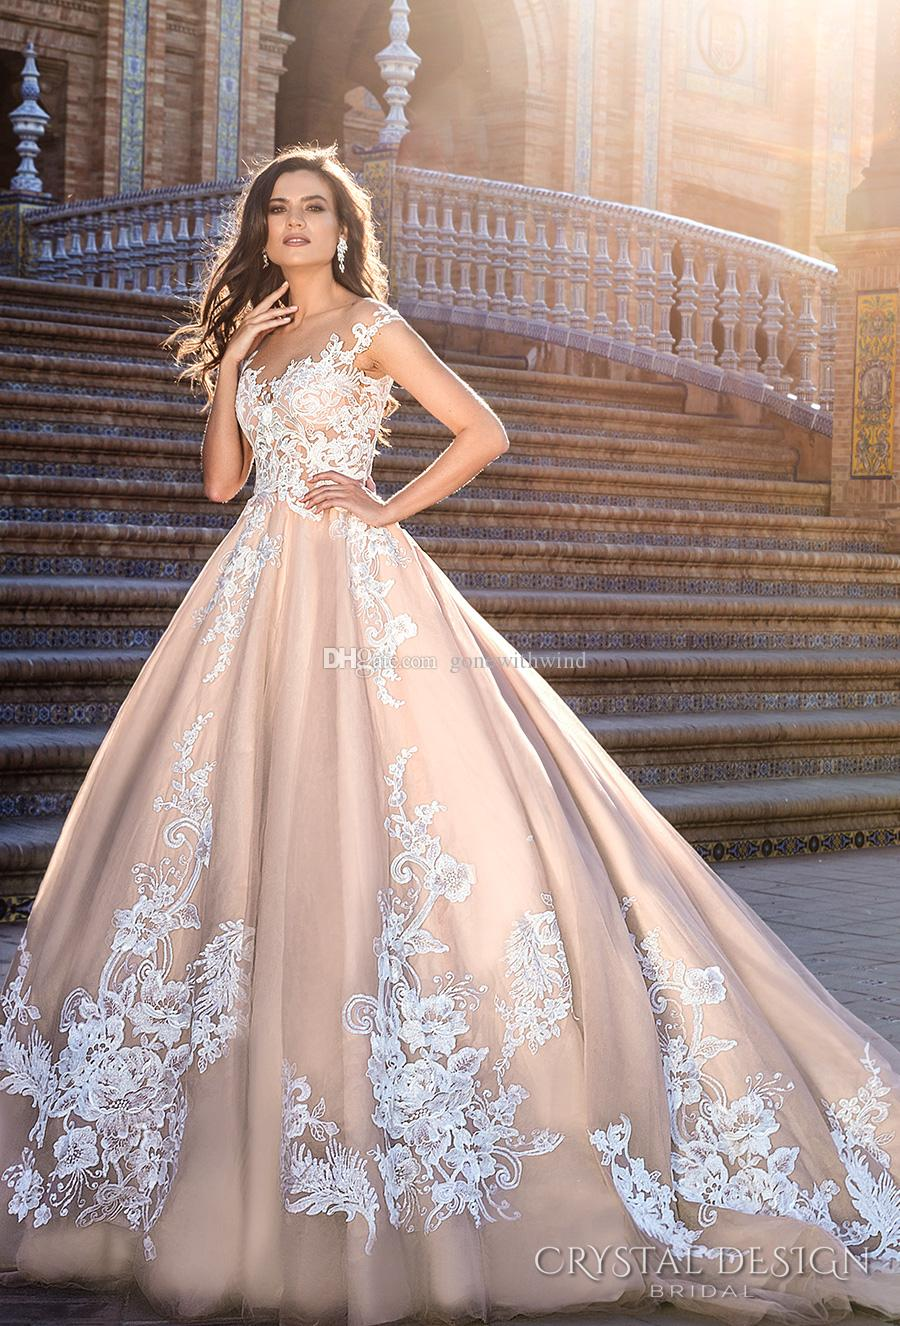 Blush Ball Gown Wedding Dresses 2017 Crystal Design Bridal Illusion ...